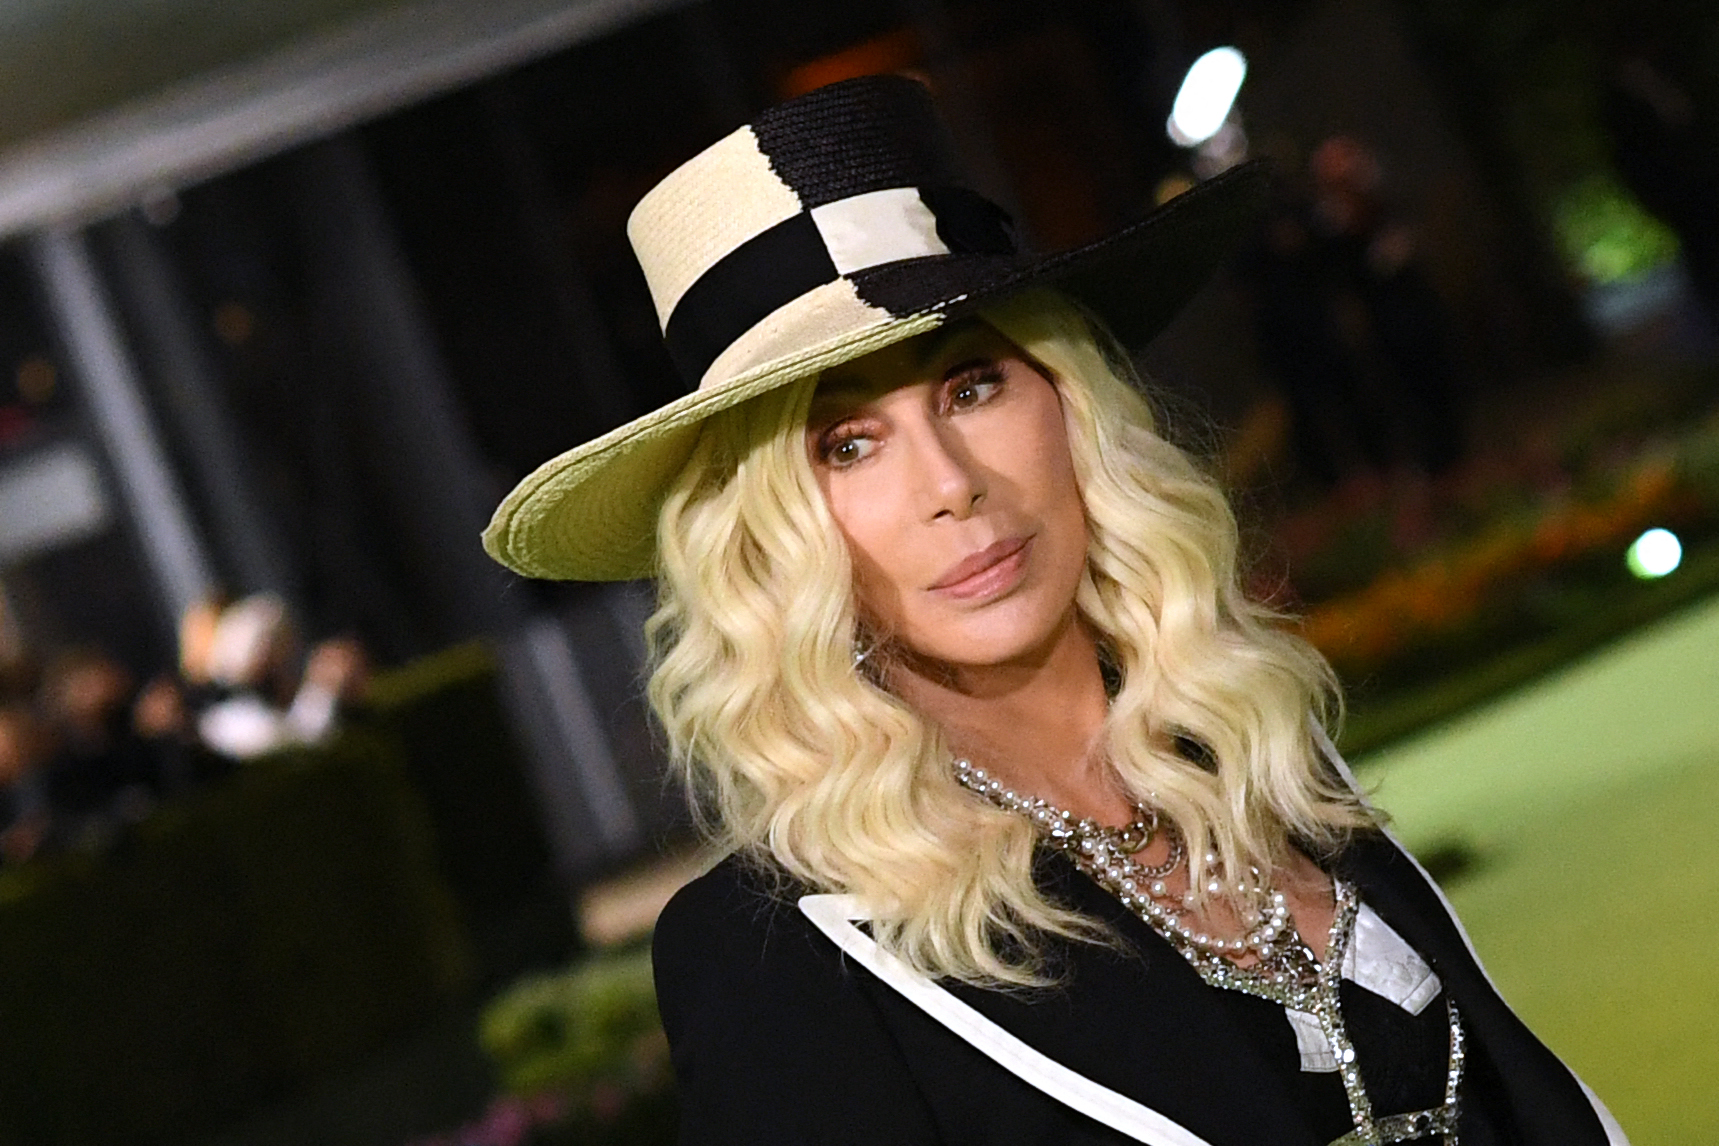 Cher arrives for the Academy Museum of Motion Pictures opening gala on September 25, 2021 in Los Angeles, (VALERIE MACON / AFP) (Photo by VALERIE MACON/AFP via Getty Images)